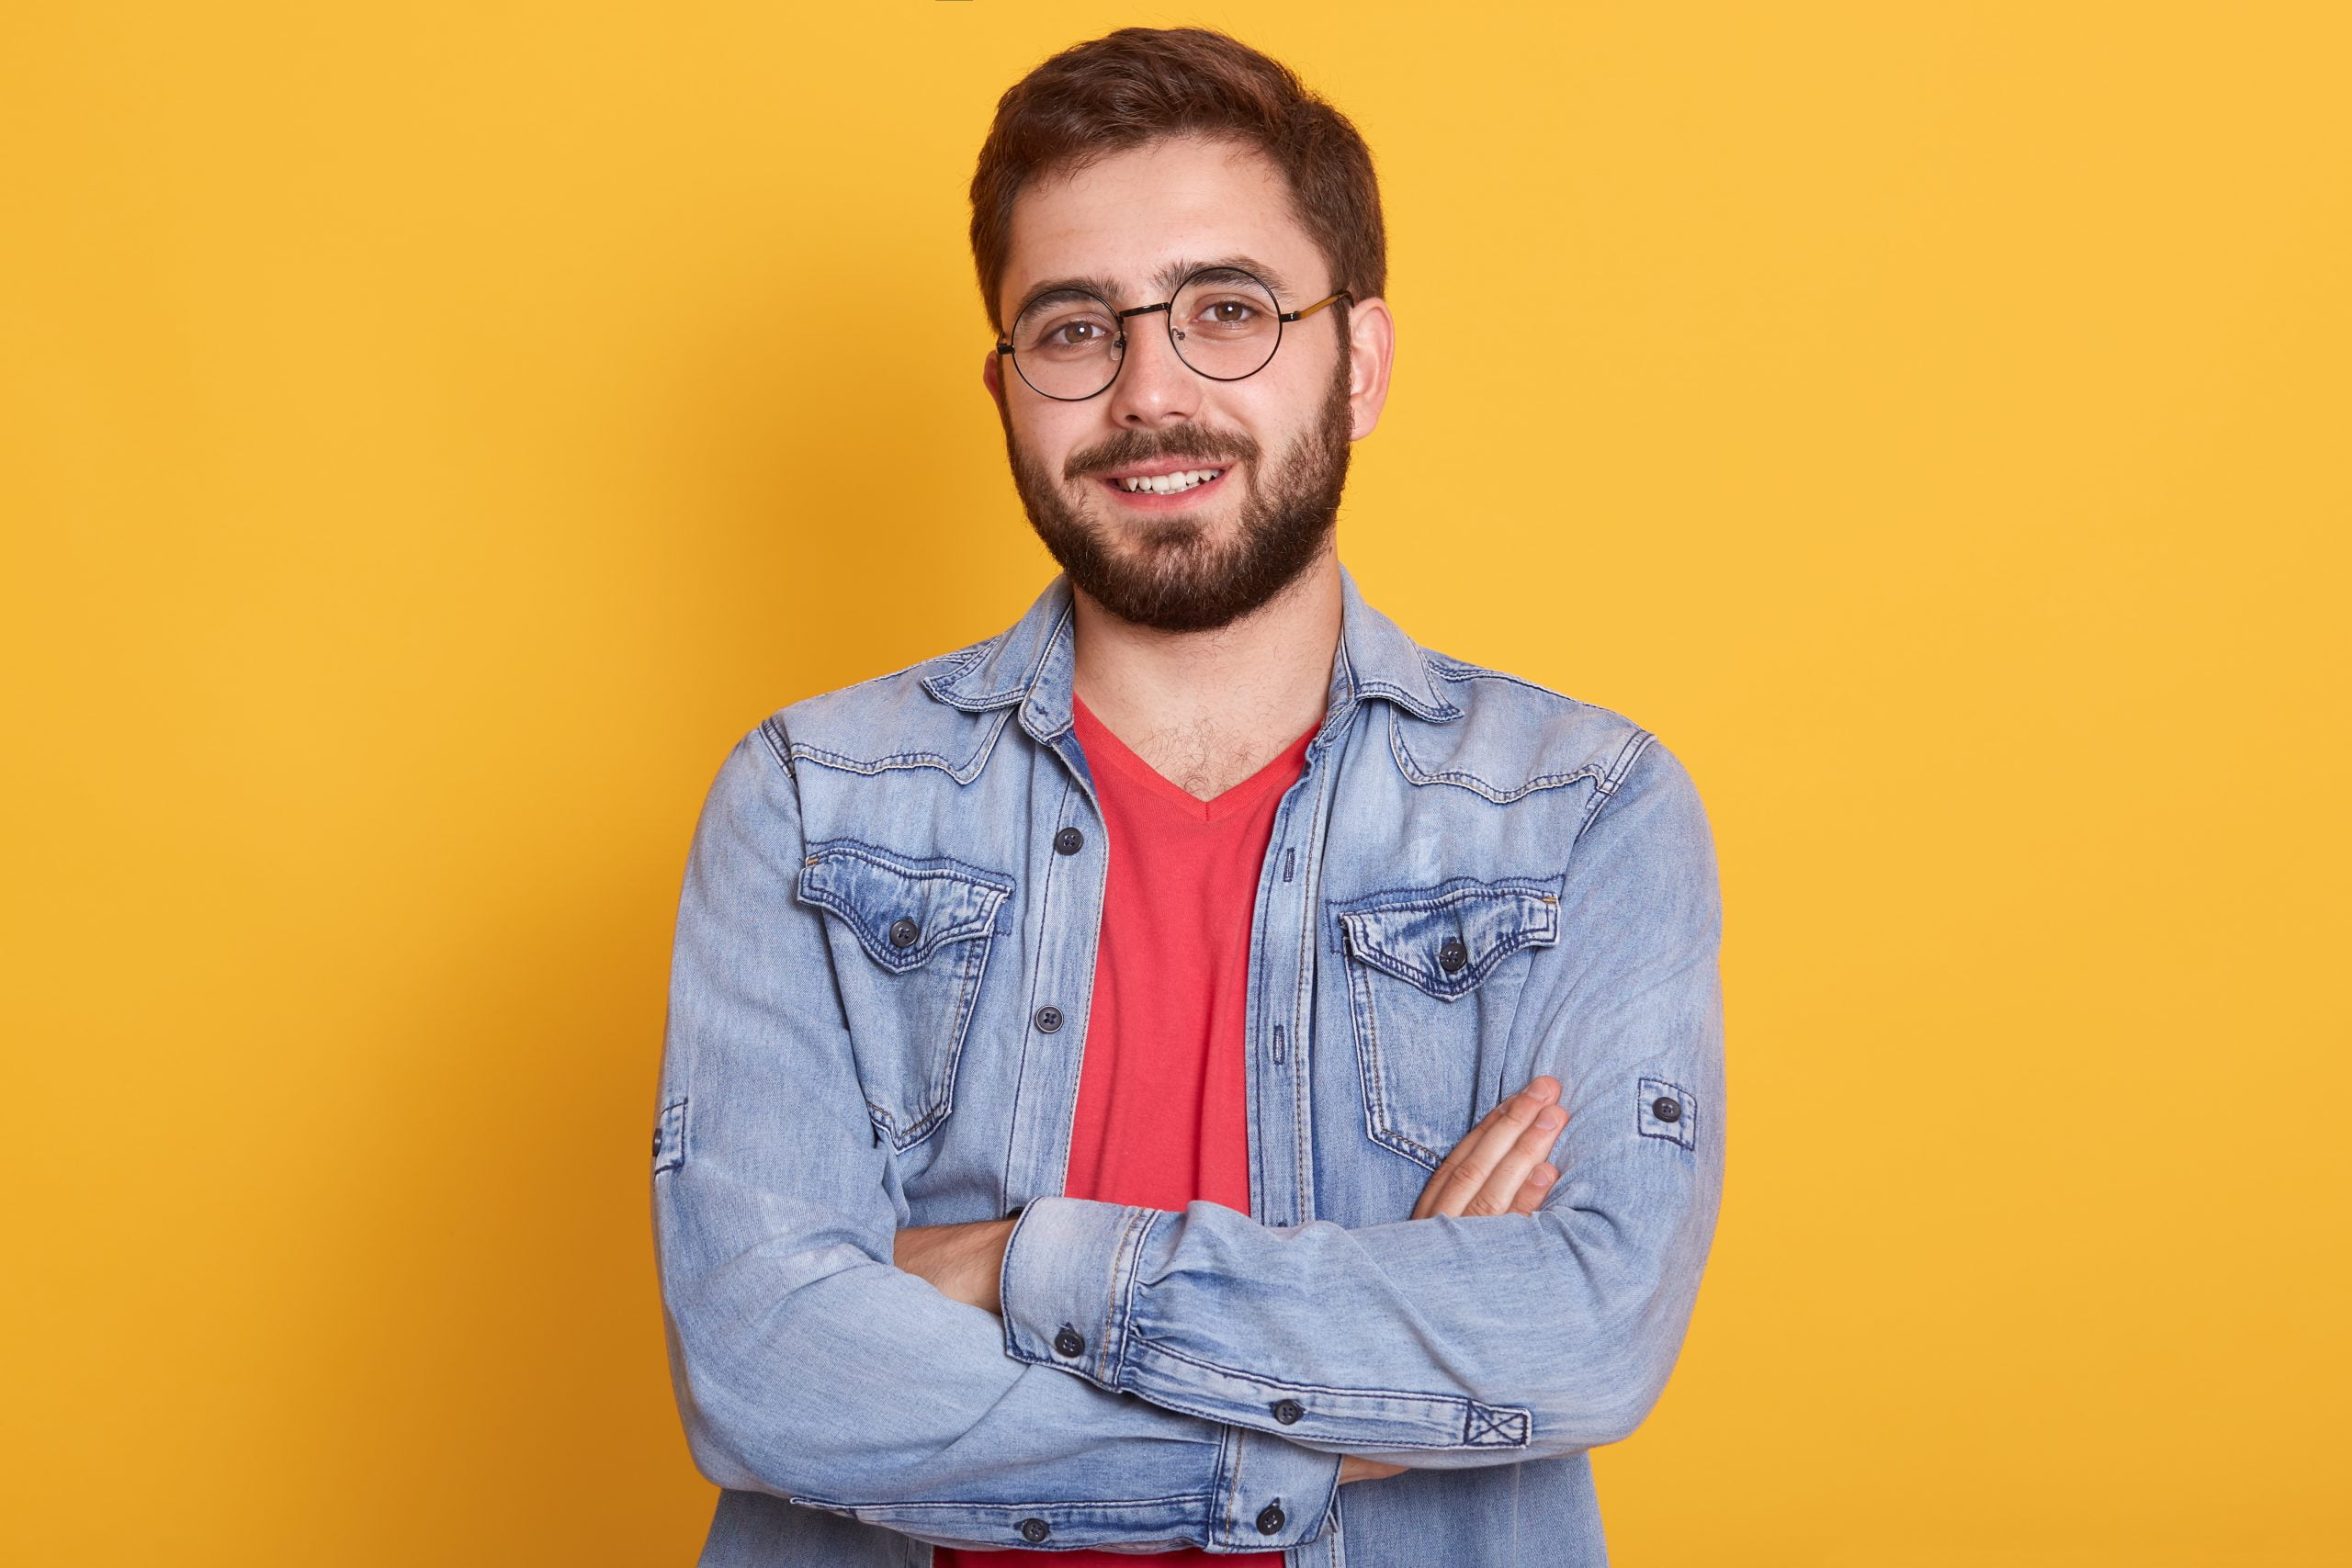 indoor picture cheerful handsome young man having folded hands looking directly smiling sincerely wearing casual clothes scaled